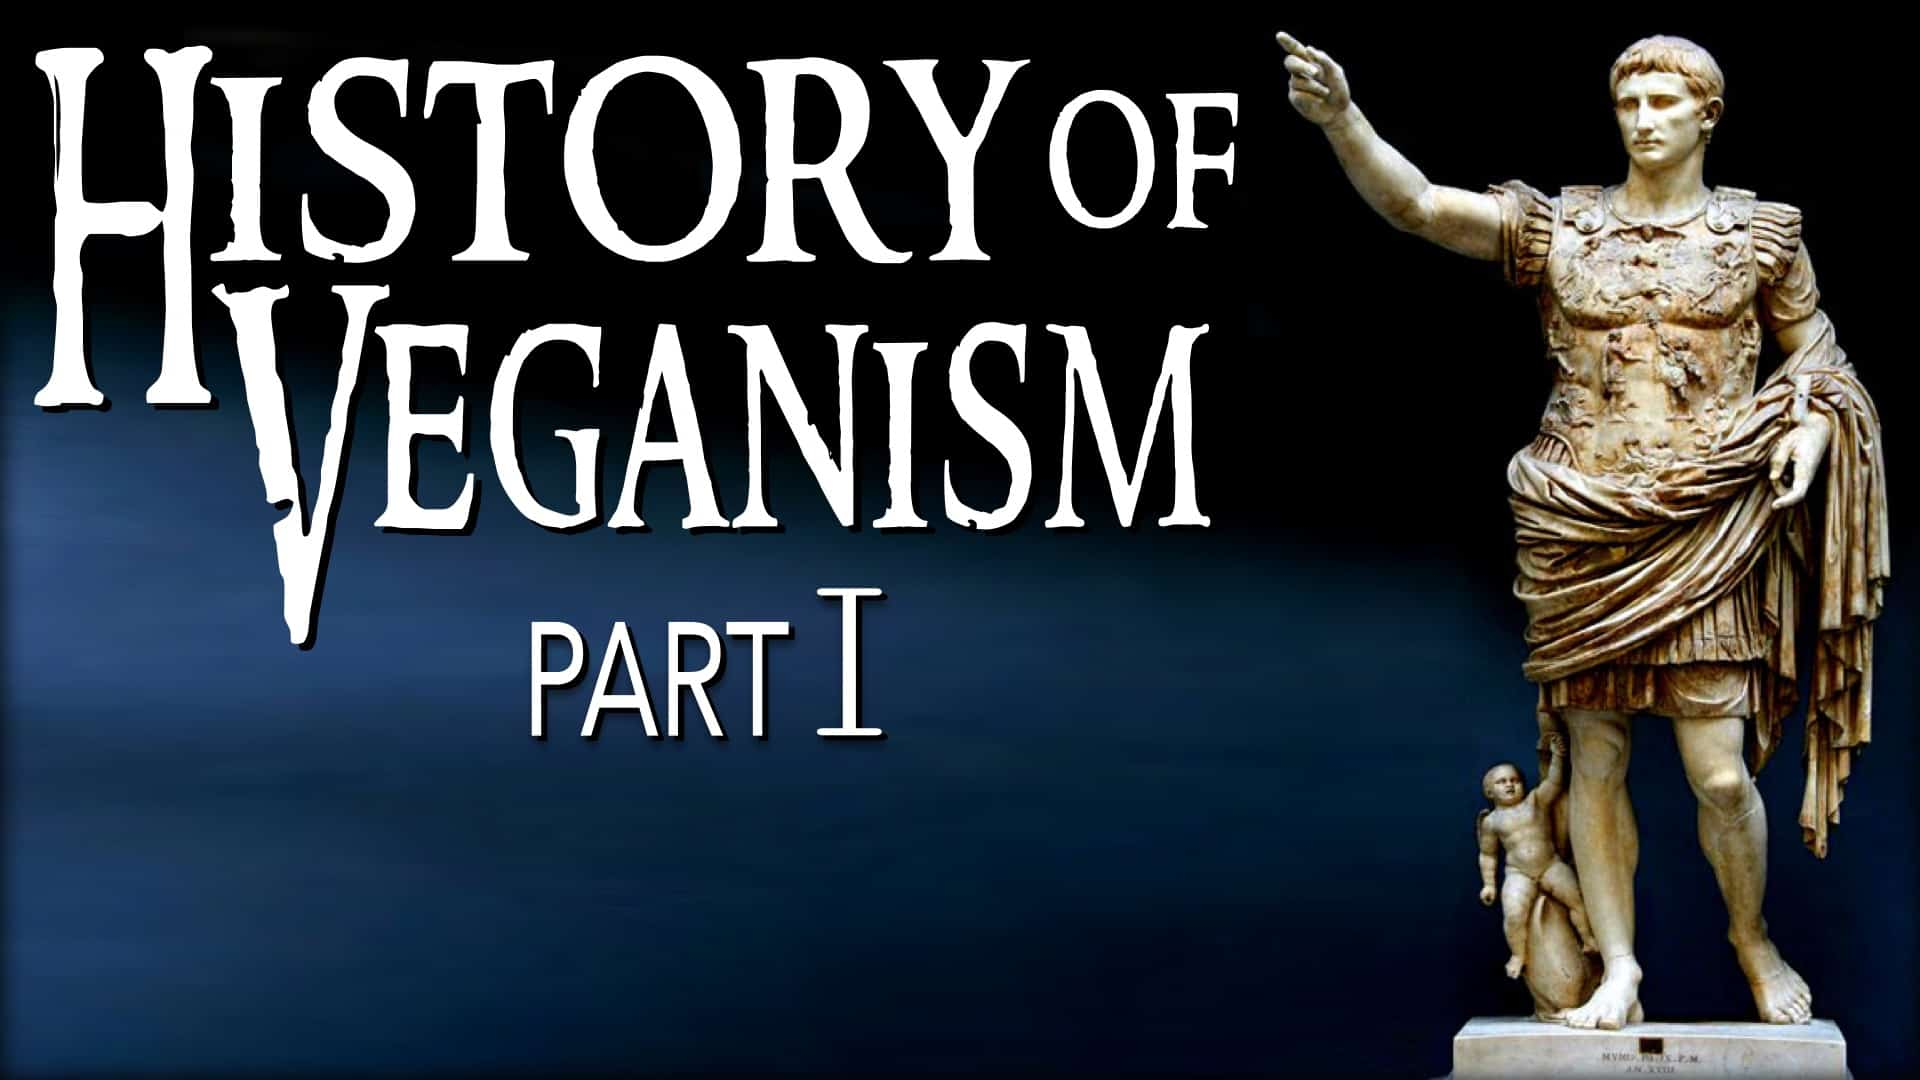 """Against a dark background, a roman statue stands, pointing towards the heavens. In large letters the words: """"History of veganism part 1"""" can be seen."""